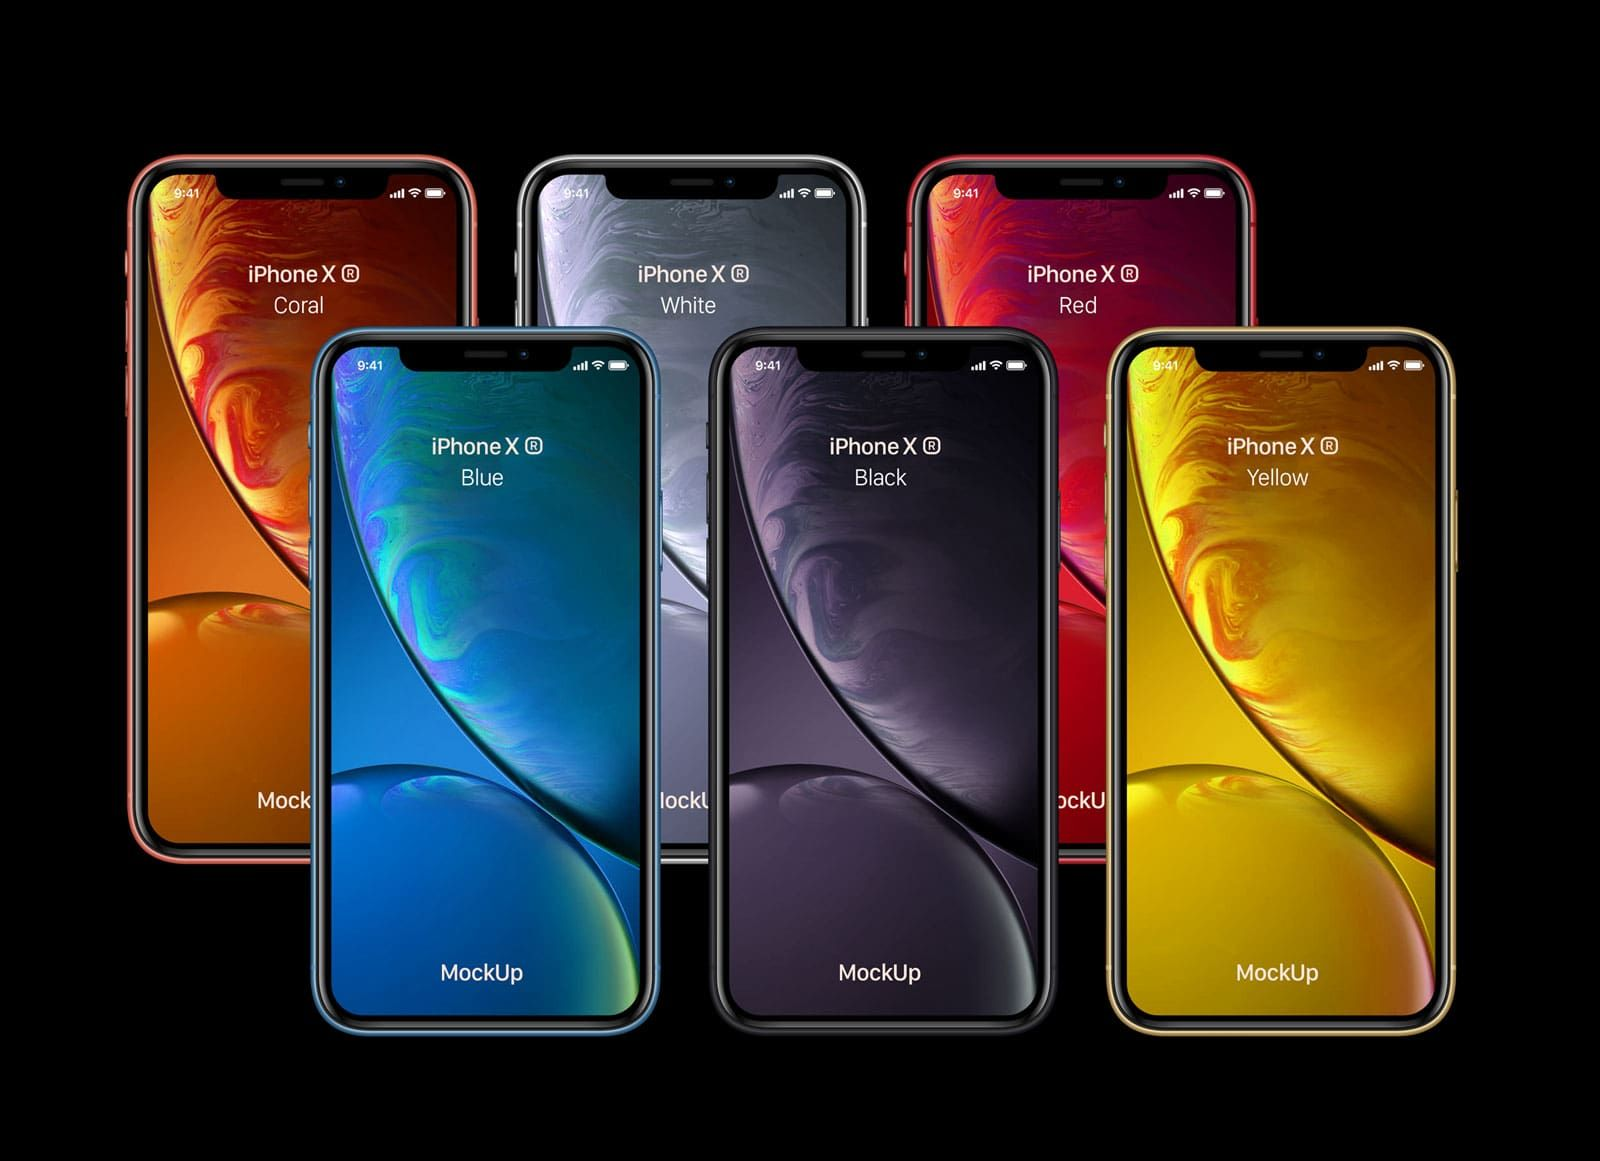 Free iPhone XR Yellow, White, Black, Red, Coral & Blue